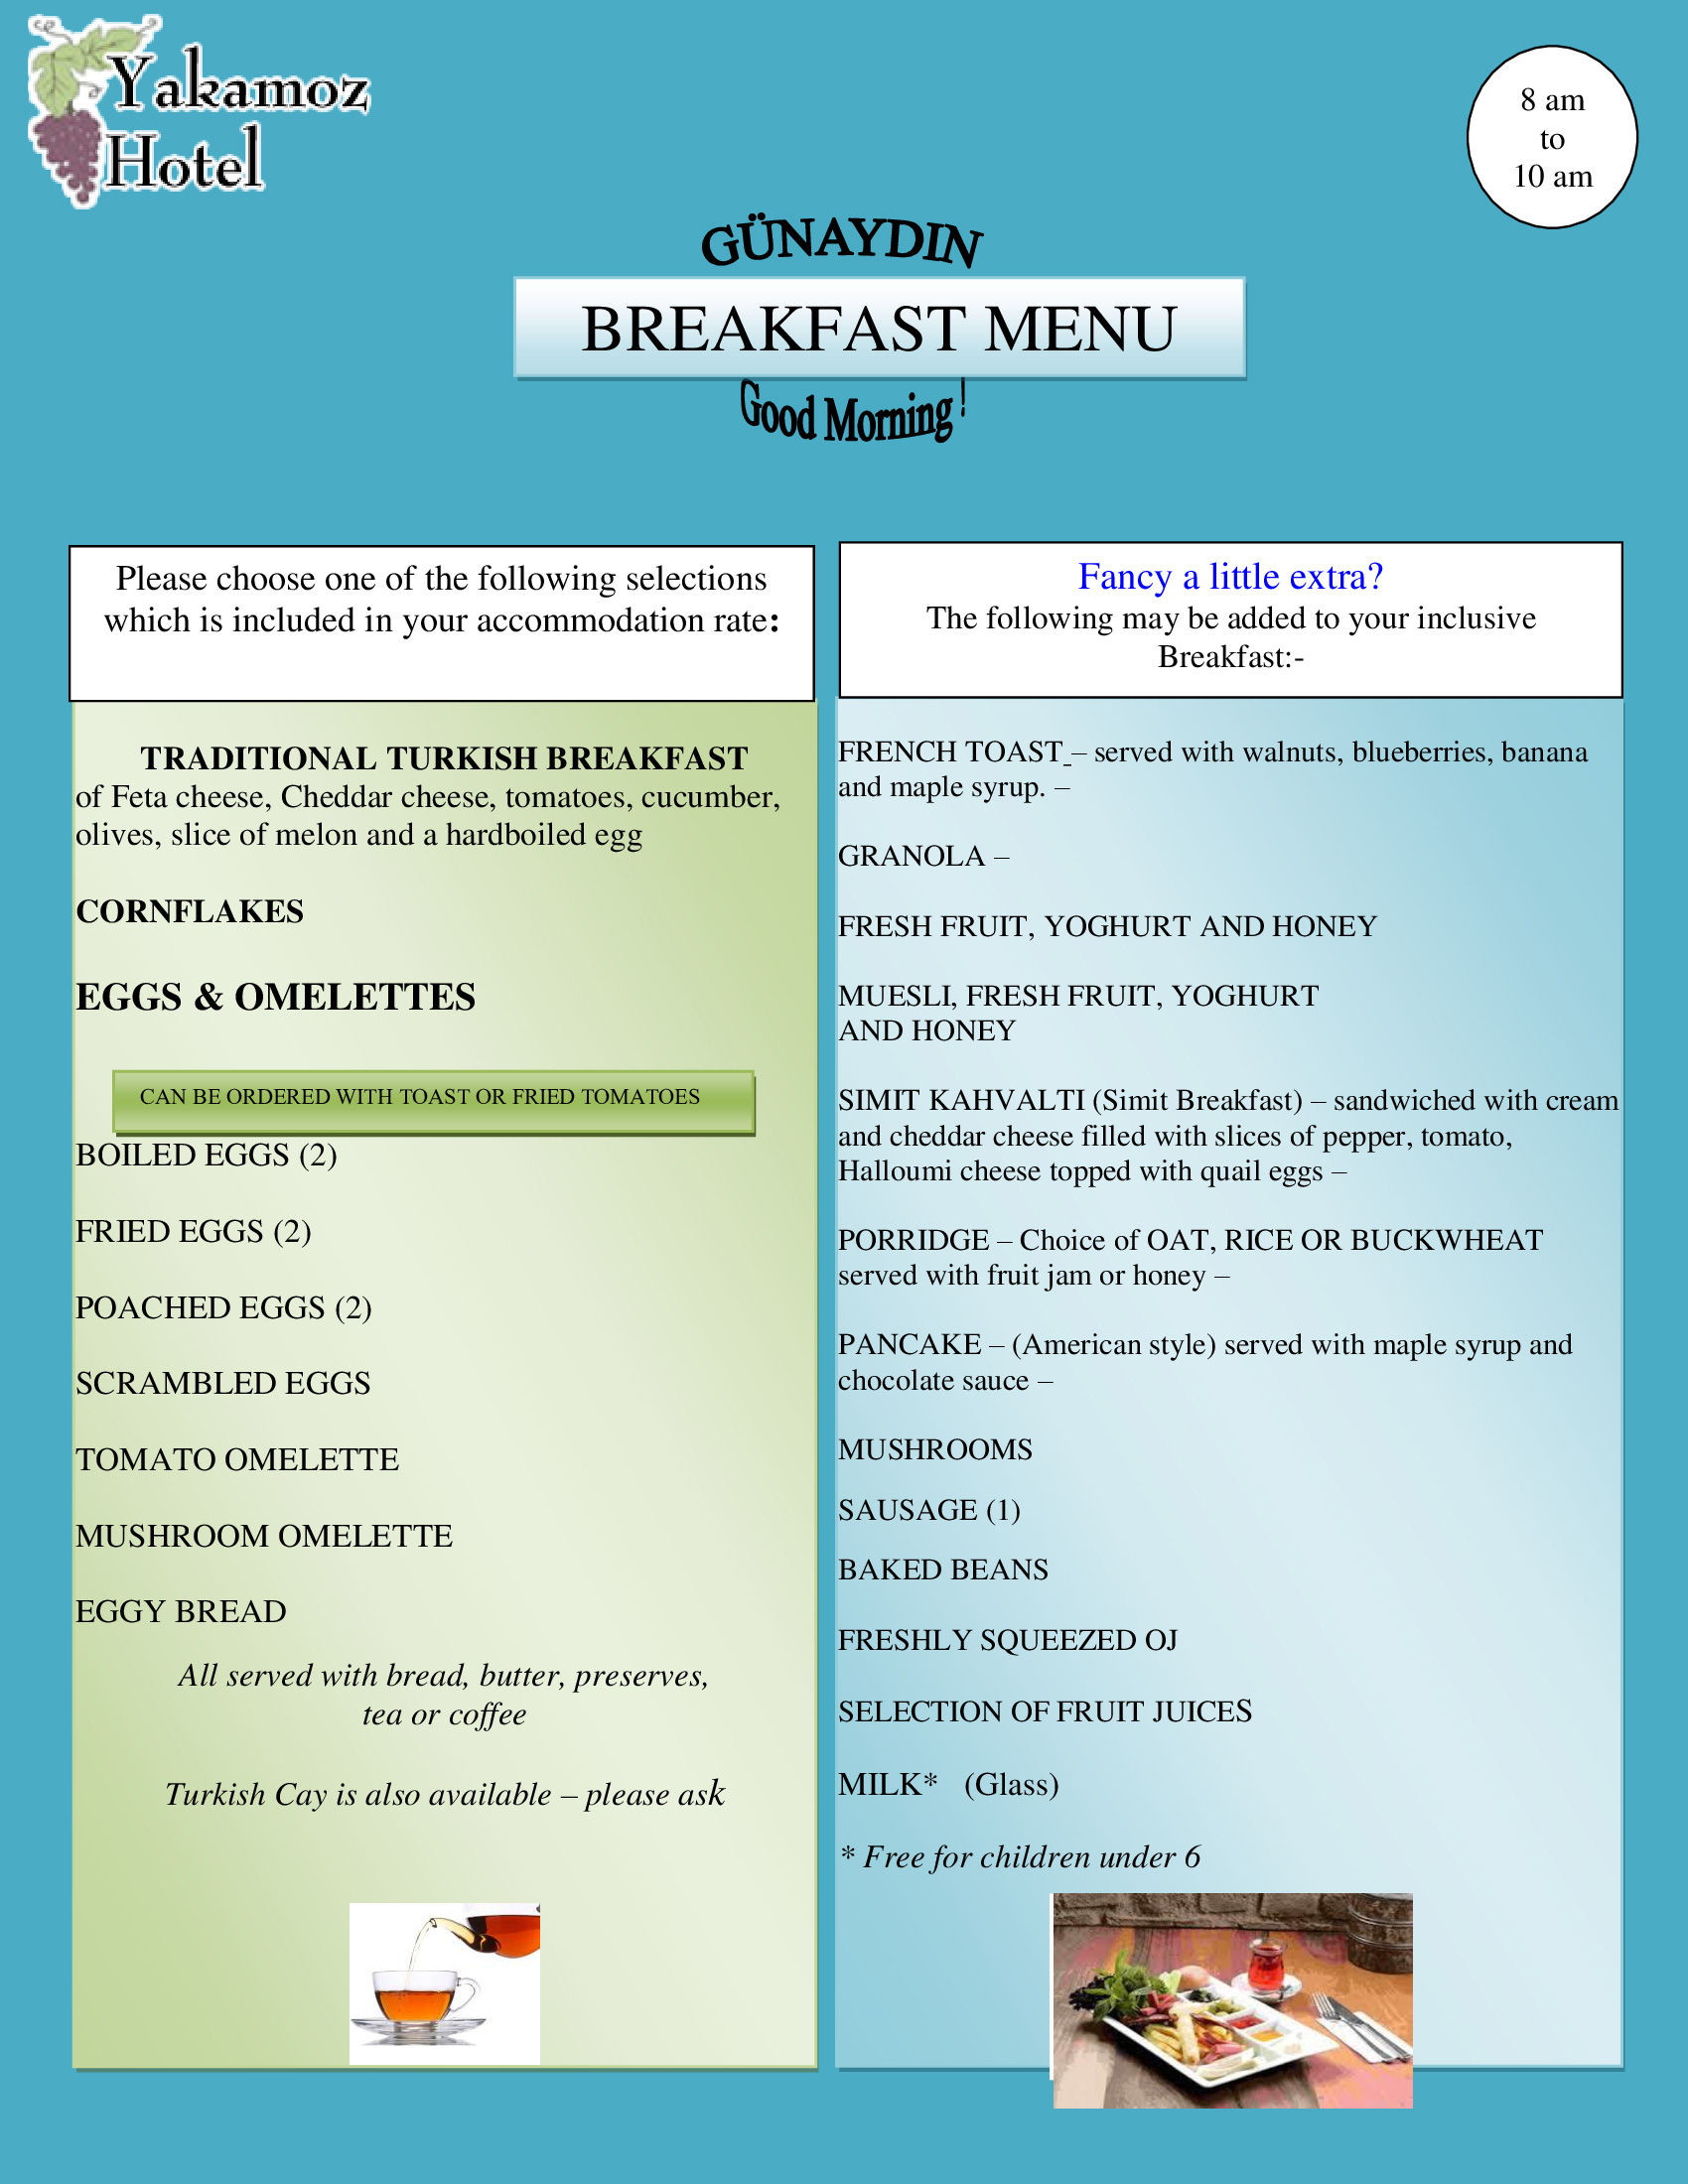 Sample Breakfast Menu 2020